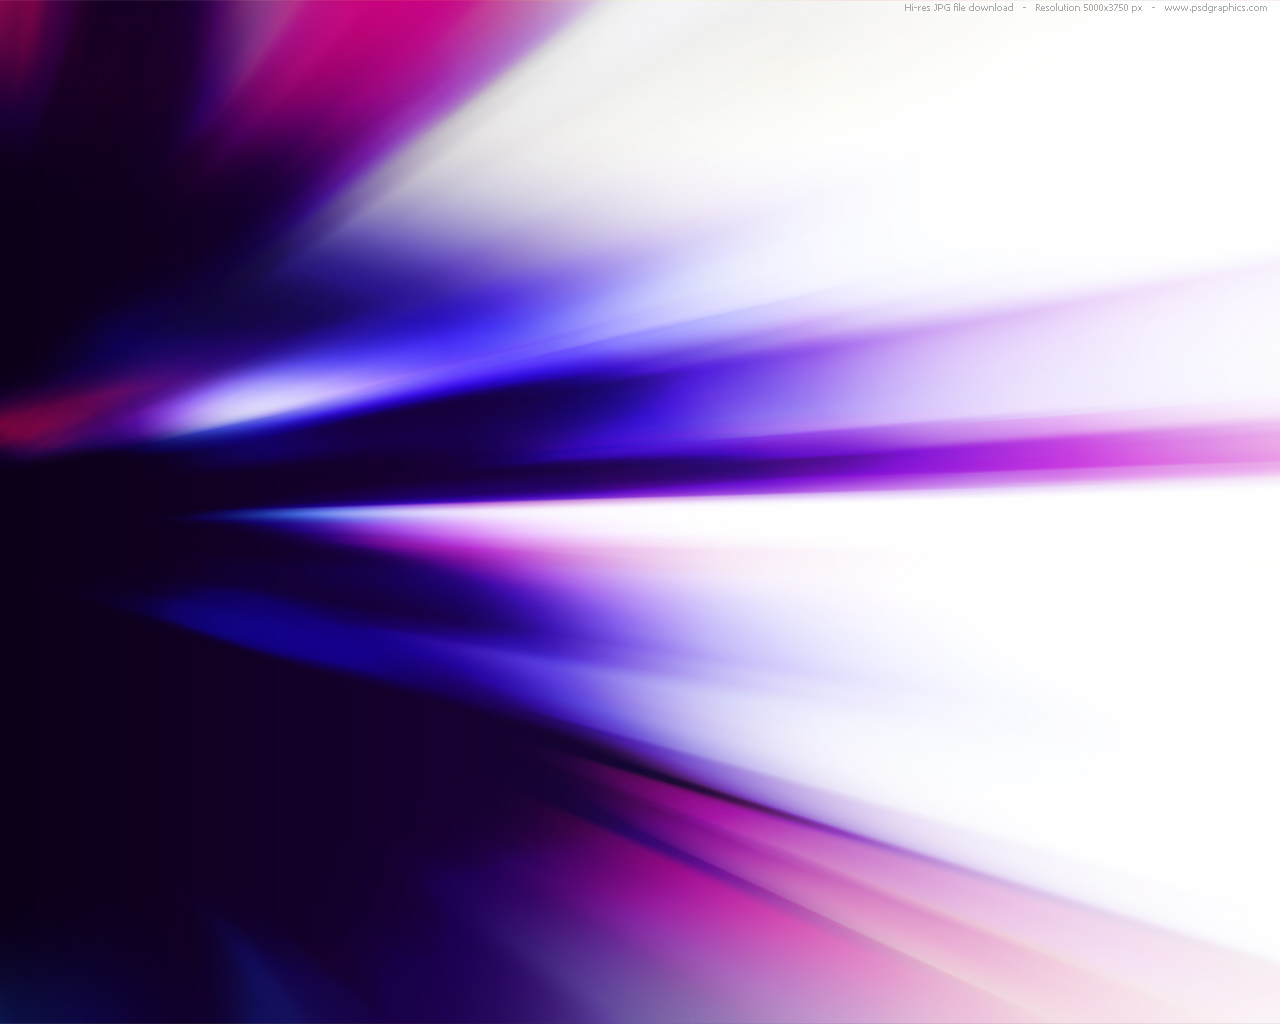 Abstract motion blur background PSDGraphics 1280x1024